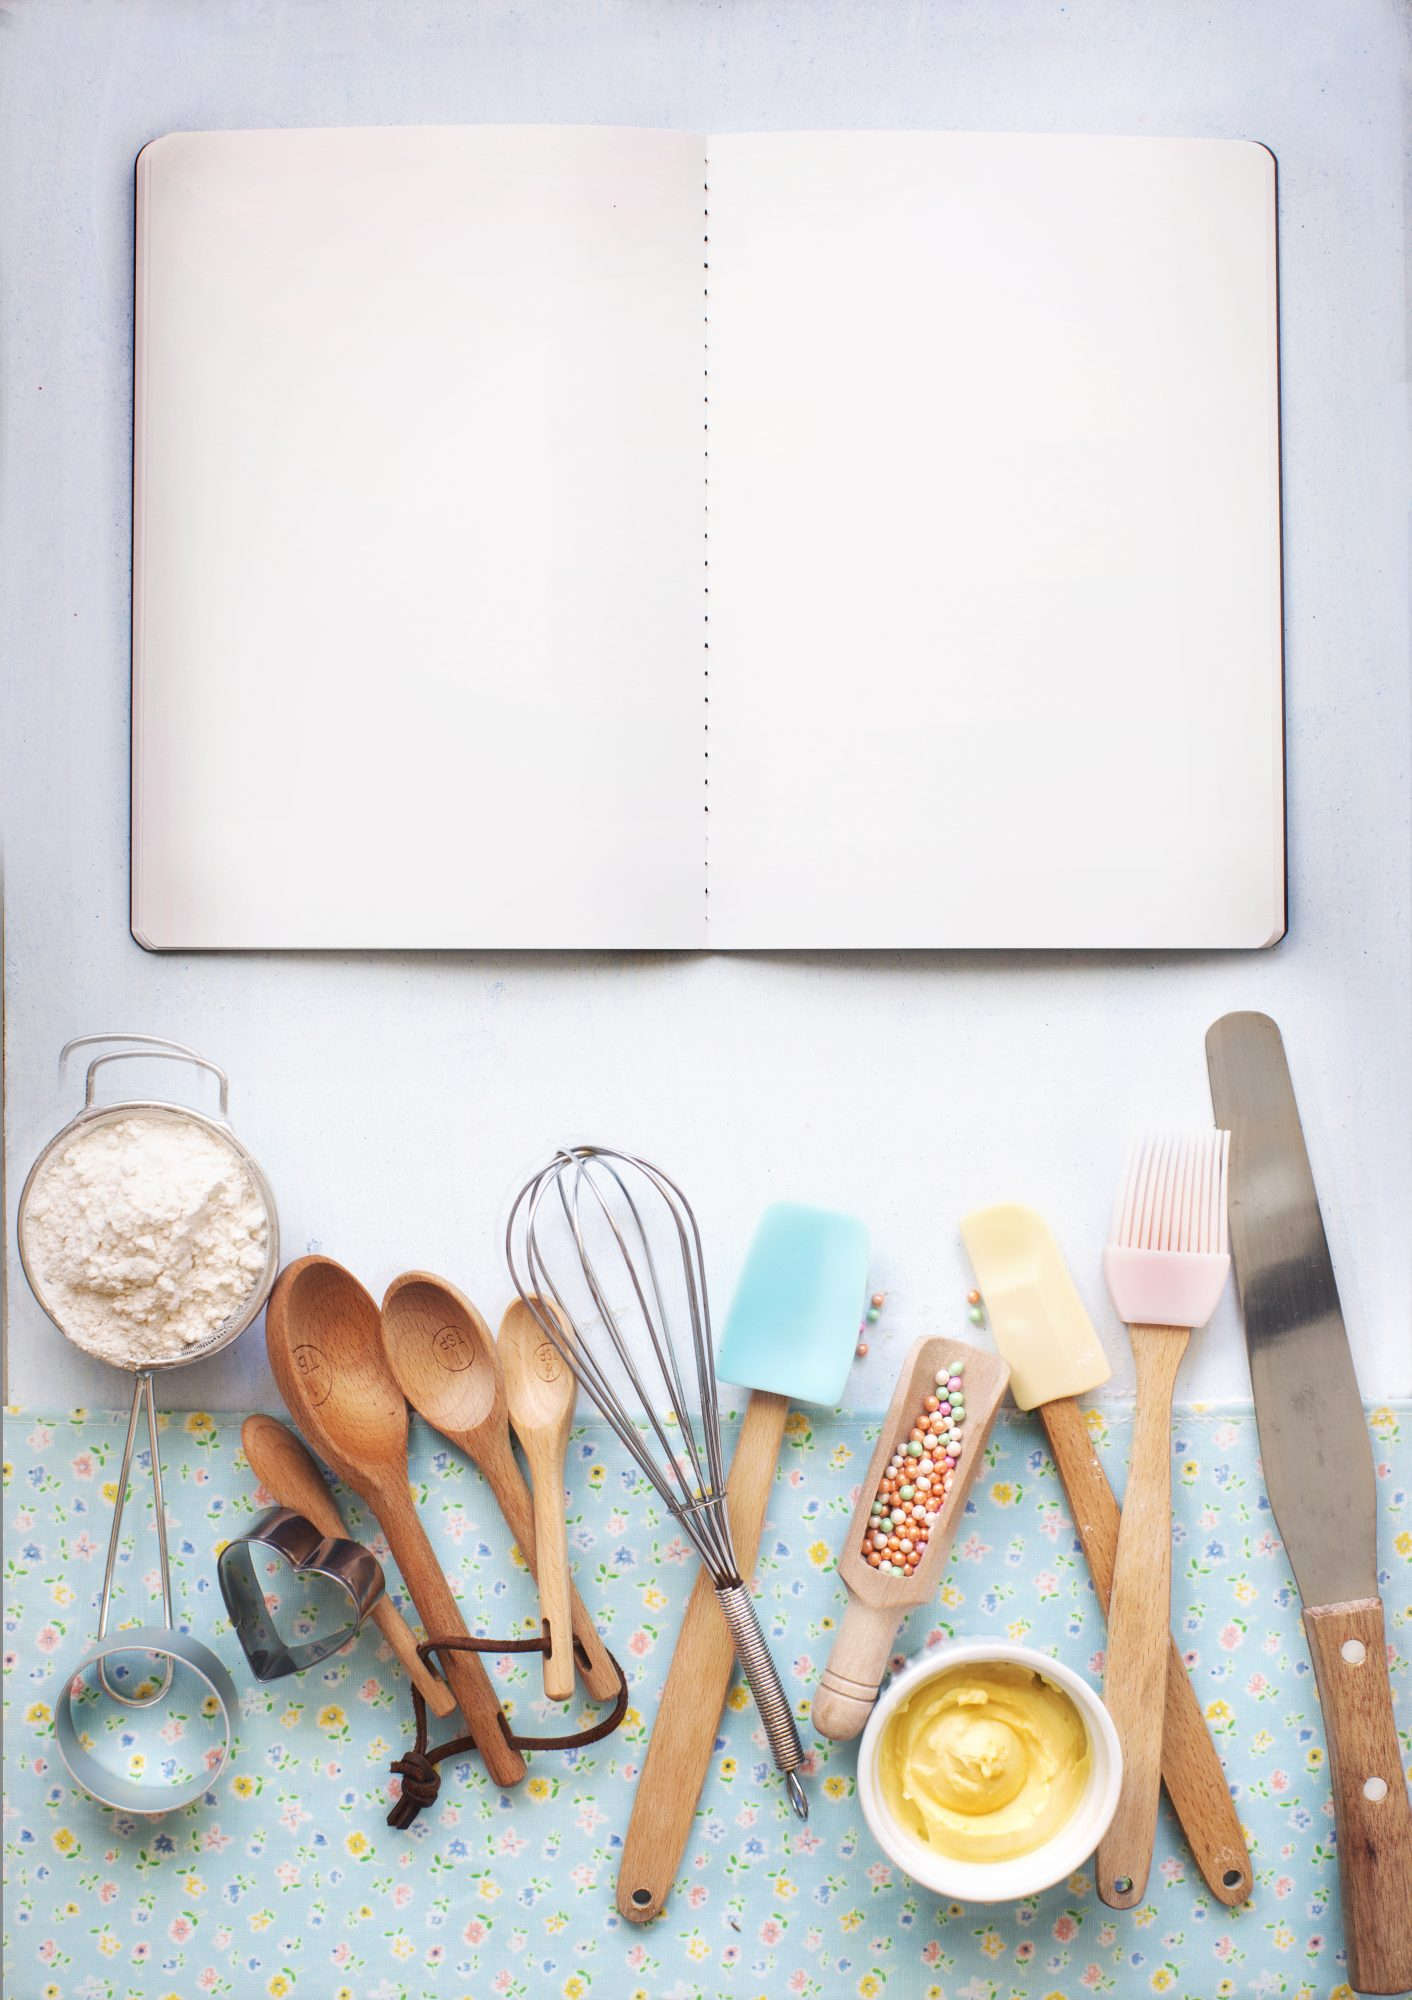 Cookbook and Utensils